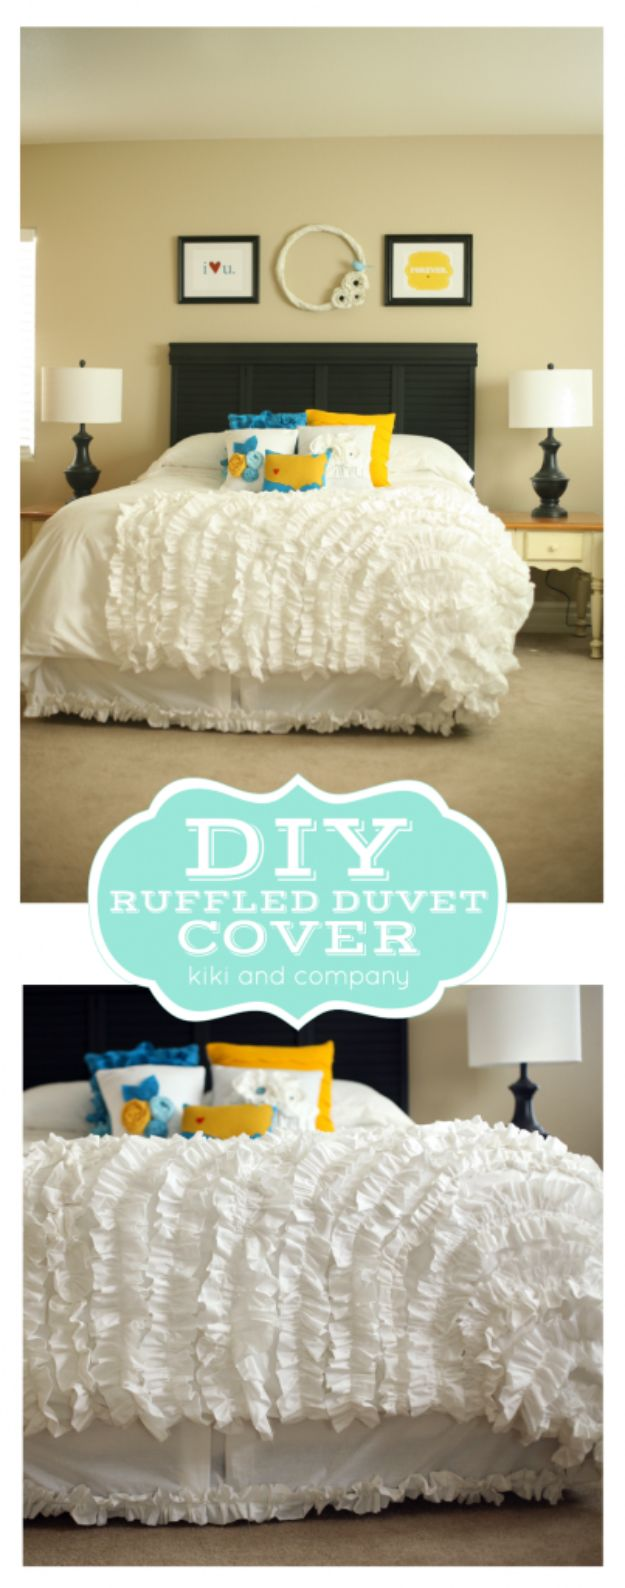 DIY Duvet Covers - DIY Ruffled Duvet Cover - Easy Sewing Projects and No Sew Ideas for Duvets - Cheap Bedroom Decor Ideas on A Budget - How To Sew A Duvet Cover and Bedding Tutorial - Creative Covers for Bed - Quick Projects for Making Designer Duvets - Awesome Home Decor Ideas and Crafts #duvet #diybedroom #roomdecor #sewingideas